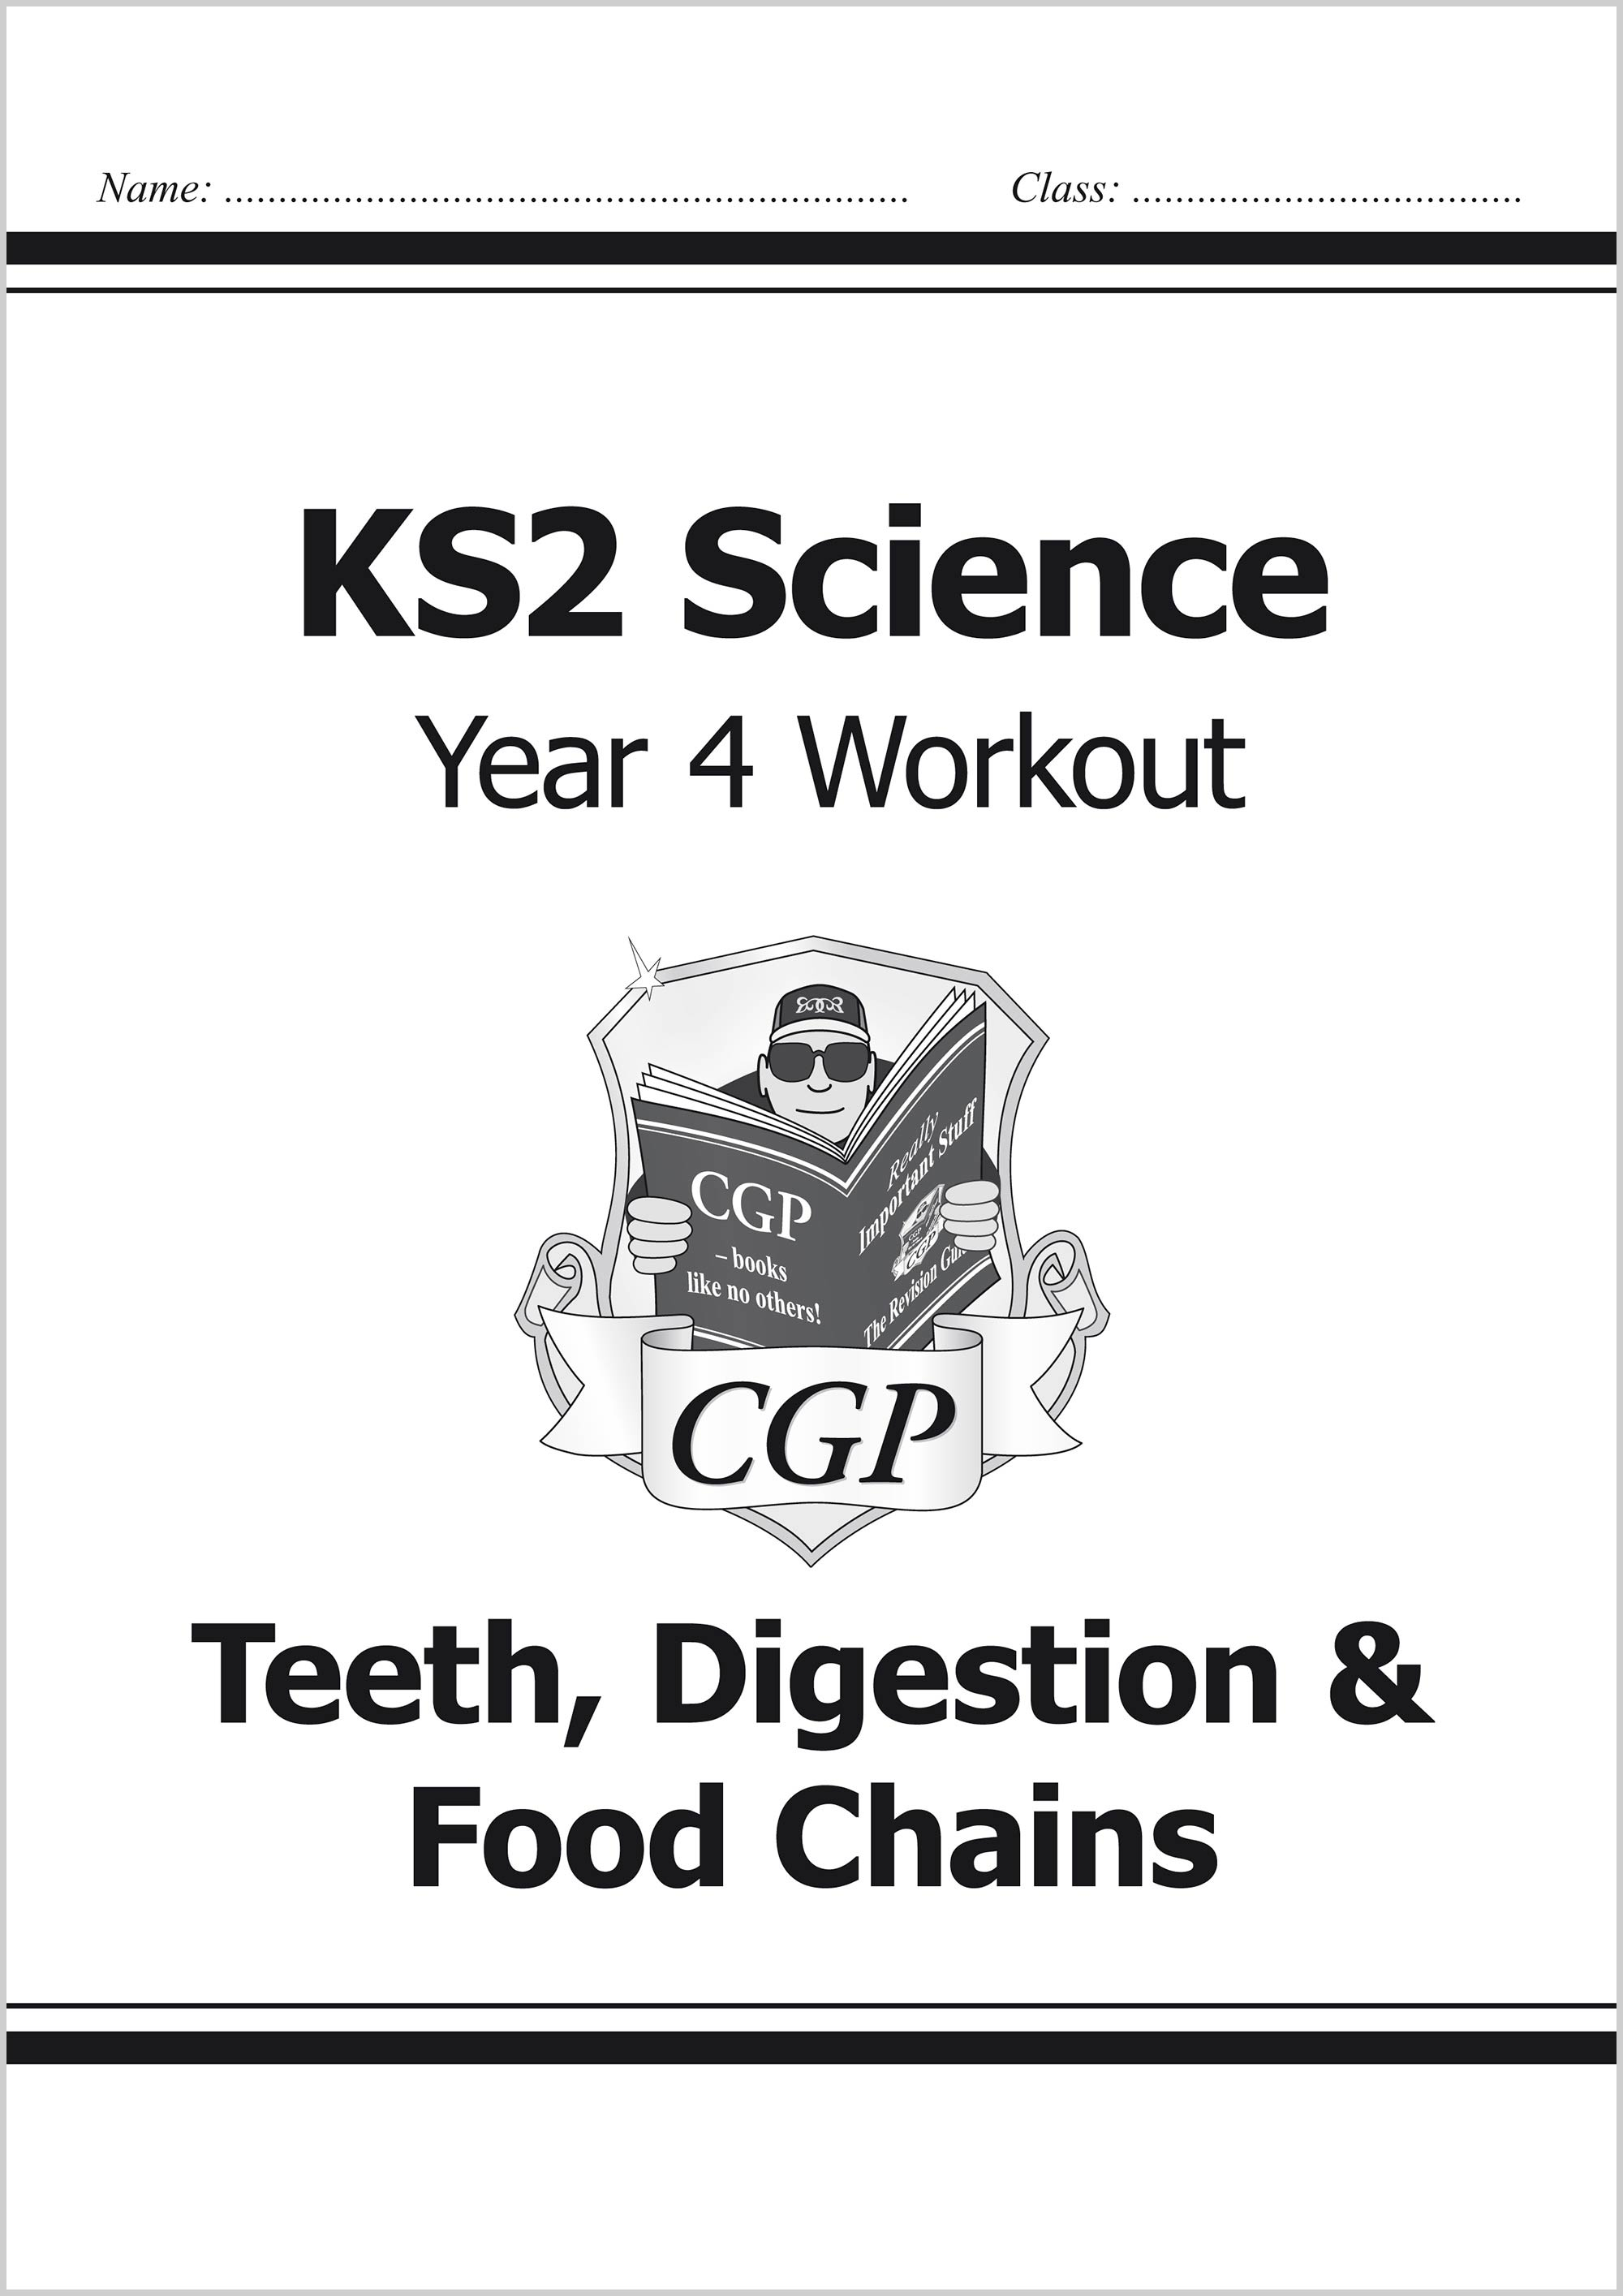 S4B22 - KS2 Science Year Four Workout: Teeth, Digestion & Food Chains